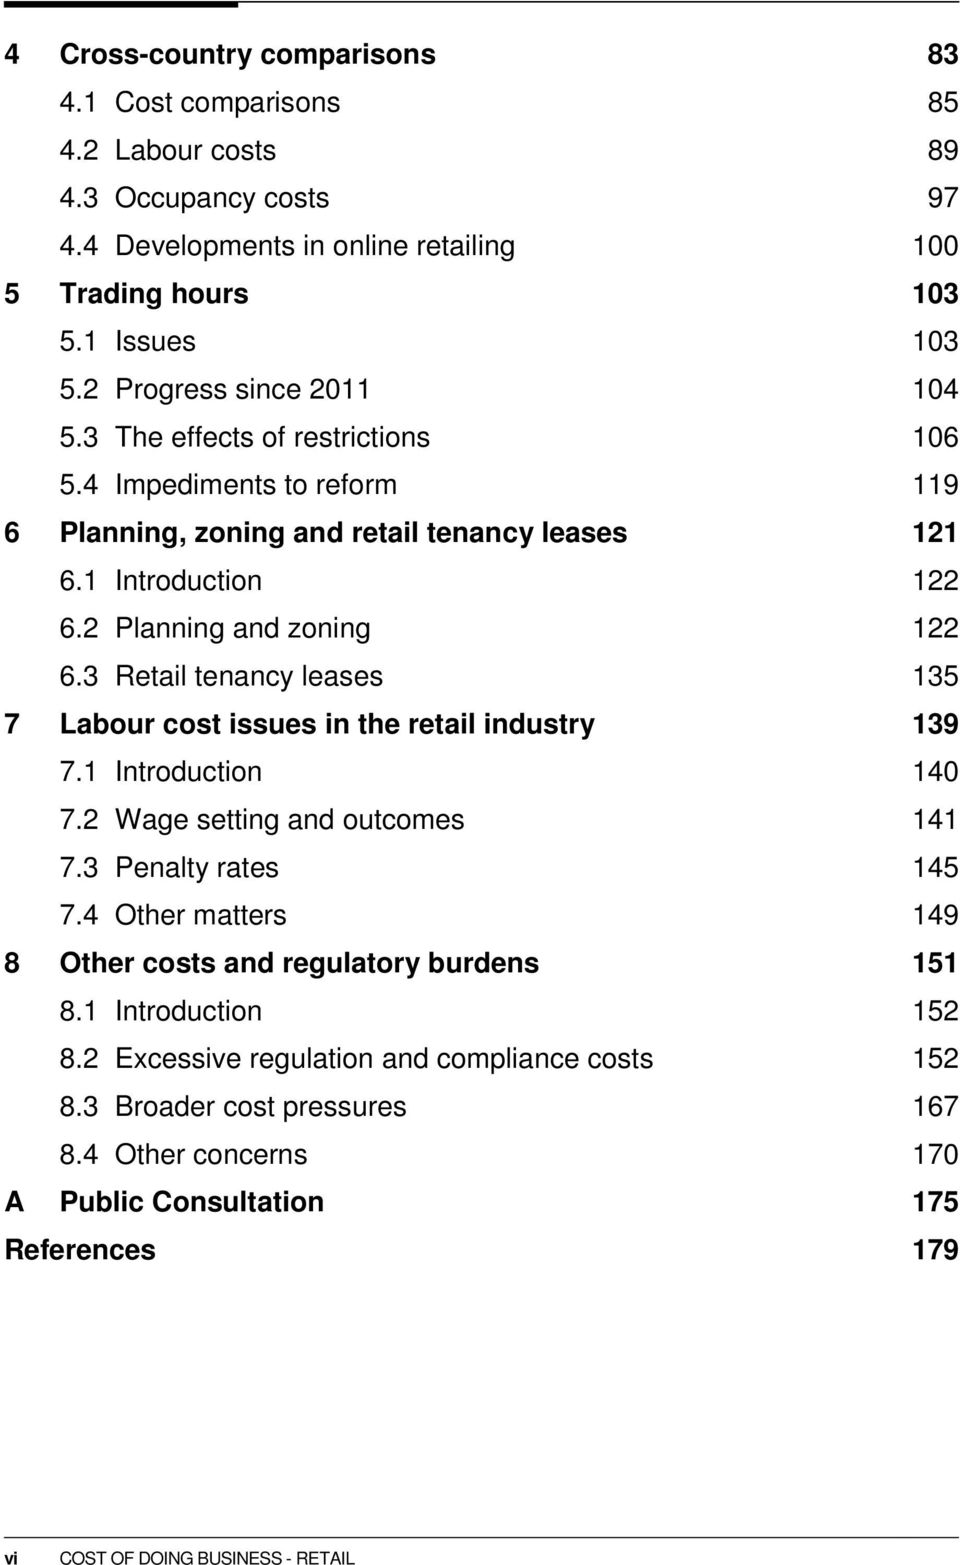 3 Retail tenancy leases 135 7 Labour cost issues in the retail industry 139 7.1 Introduction 140 7.2 Wage setting and outcomes 141 7.3 Penalty rates 145 7.